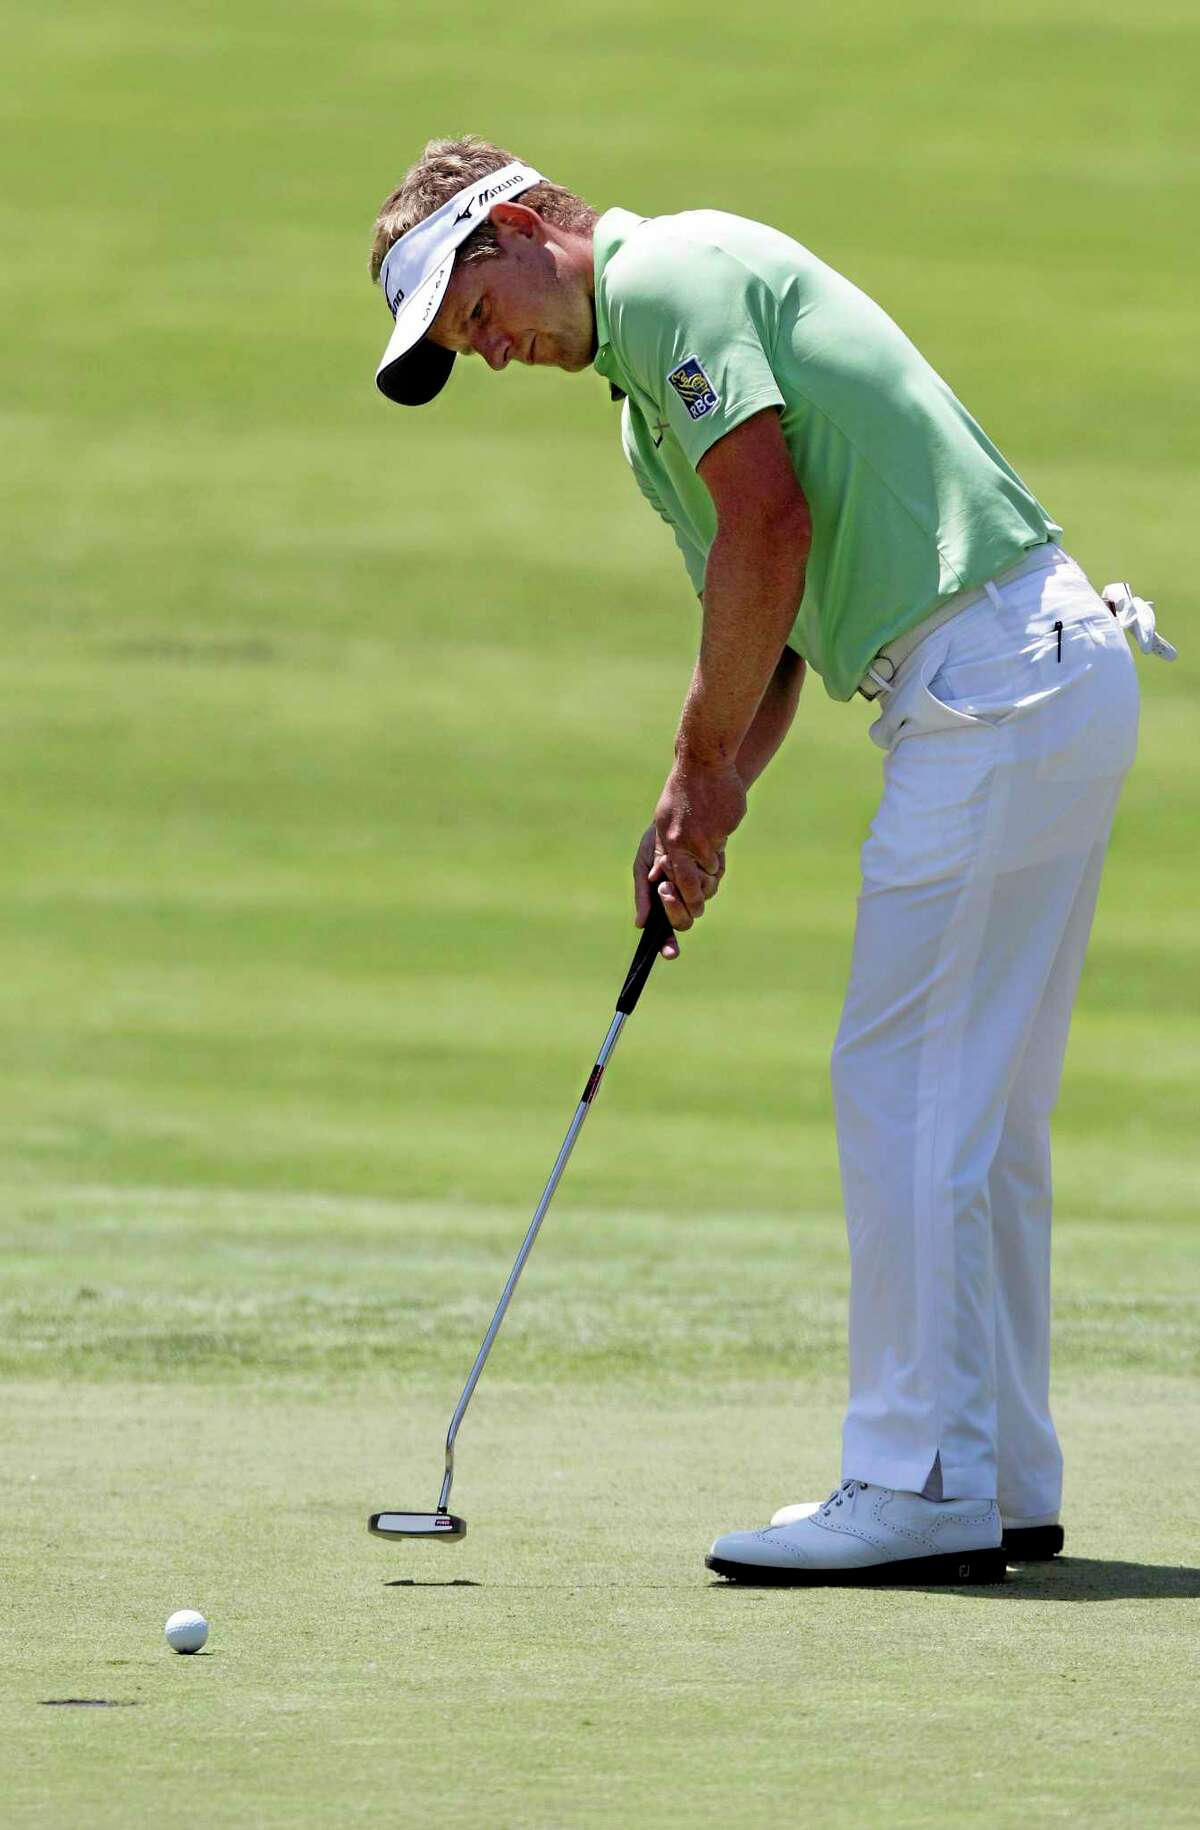 Luke Donald putts on the 13th hole during the second round of the Memorial on May 30 in Dublin, Ohio.